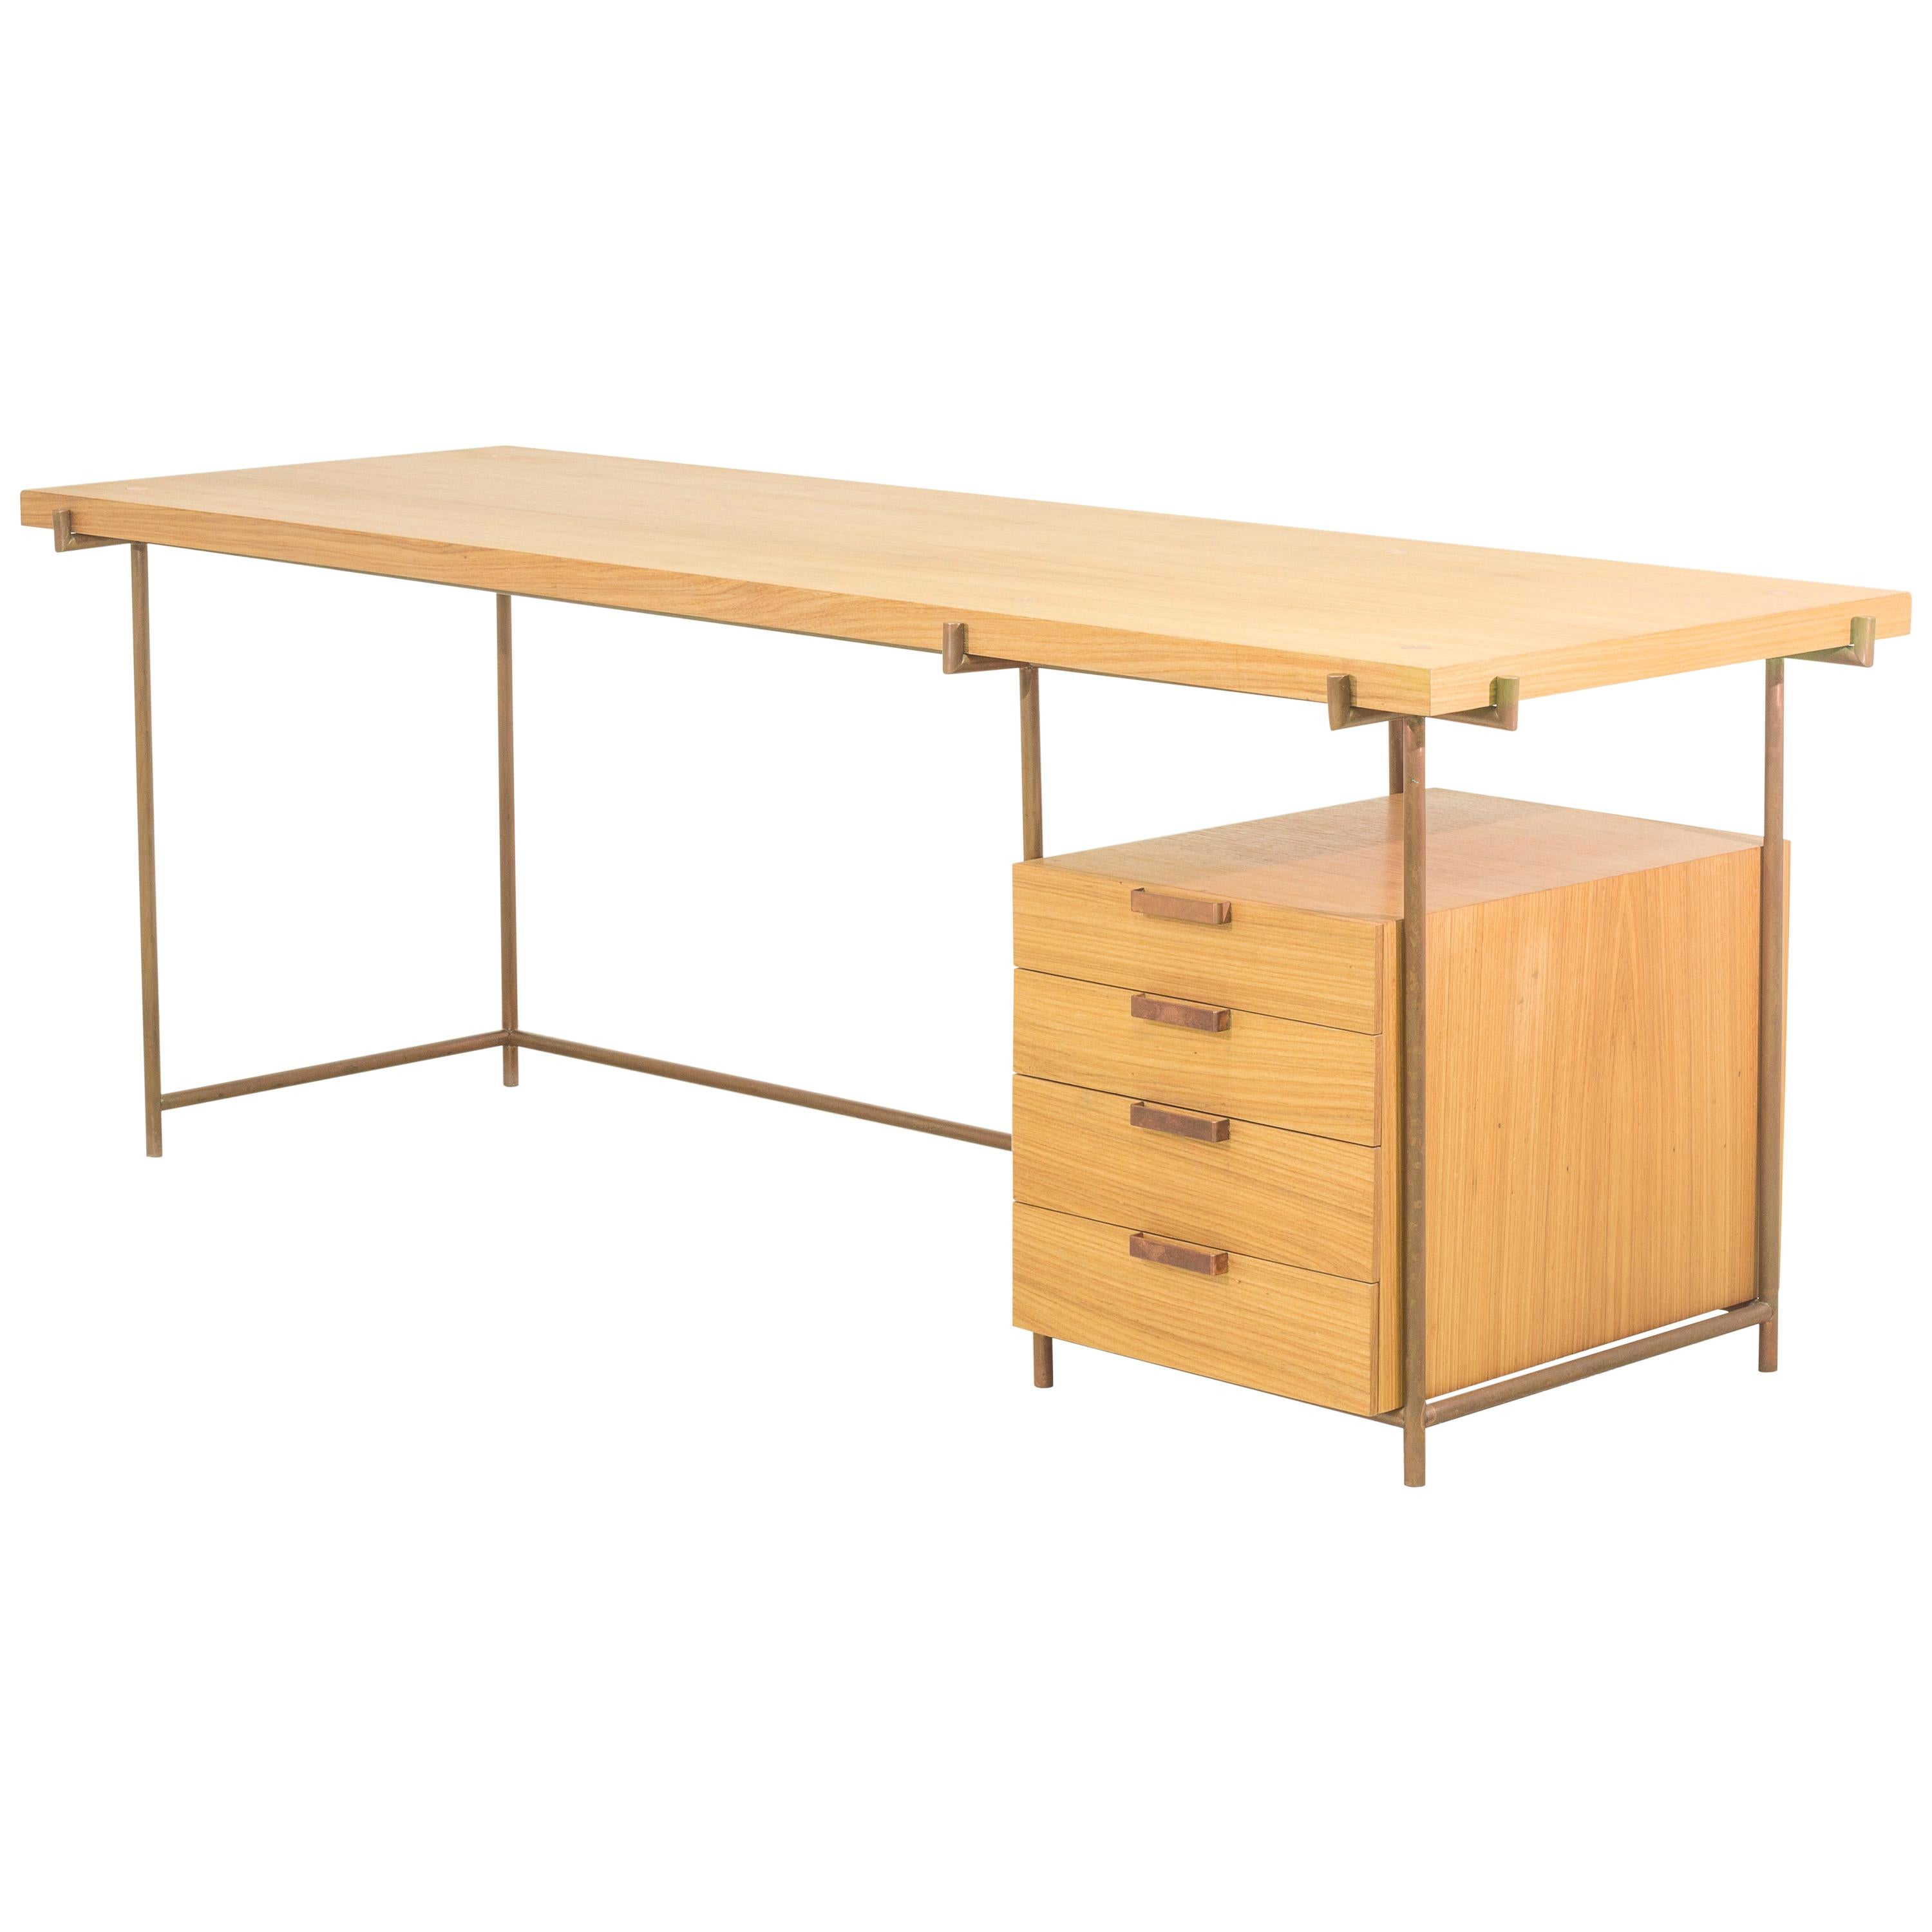 Desk with Drawers, Mid Century Modern Wood Copper  / by Brazilian Atelier BAM